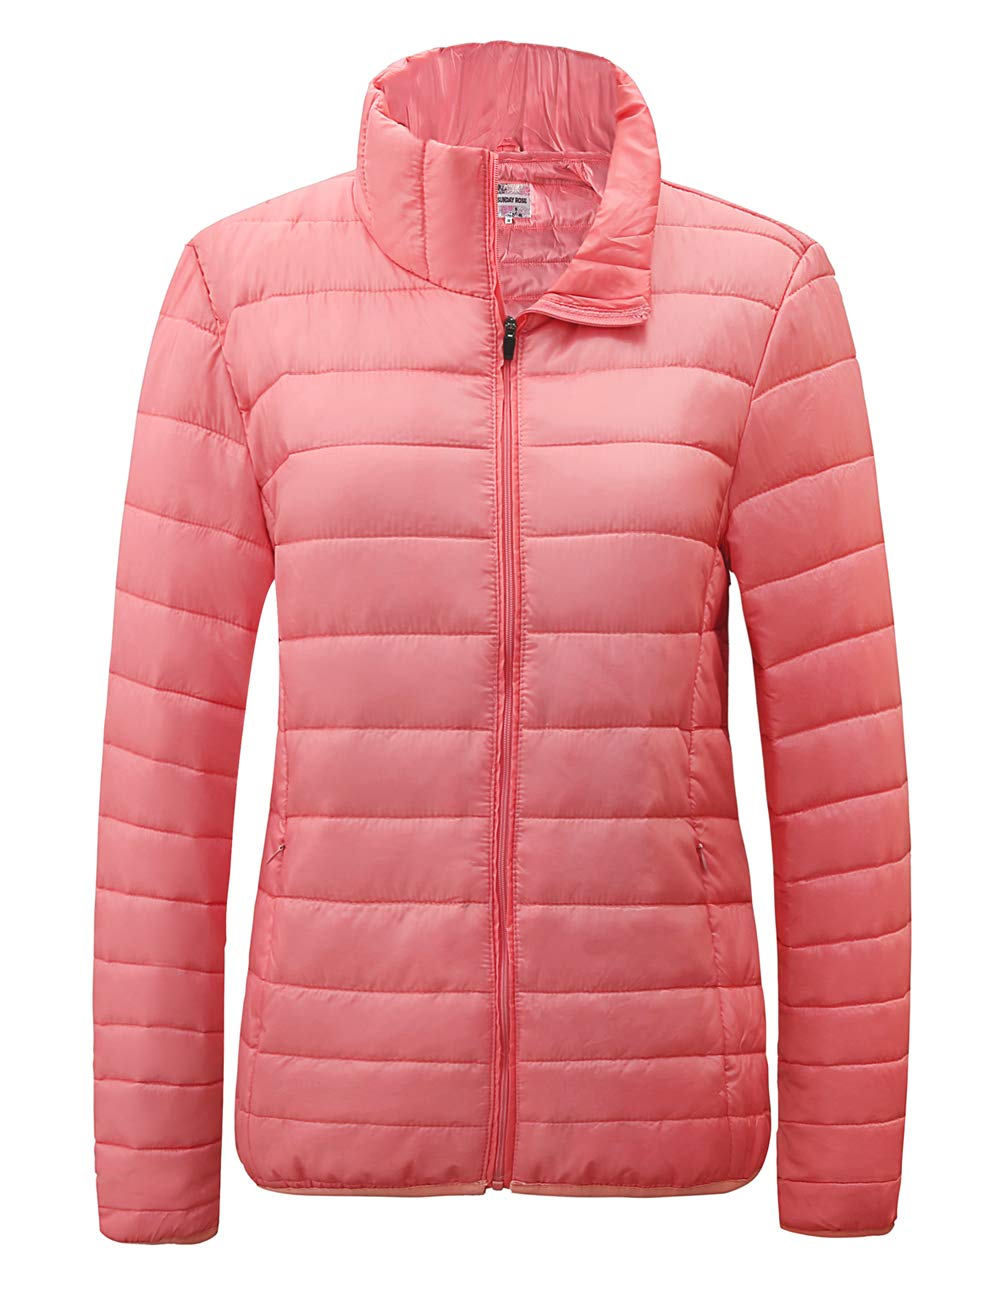 SUNDAY ROSE Packable Puffer Jacket Women Slim Fit Lightweight Quilted Jacket (Pink, Medium) by SUNDAY ROSE